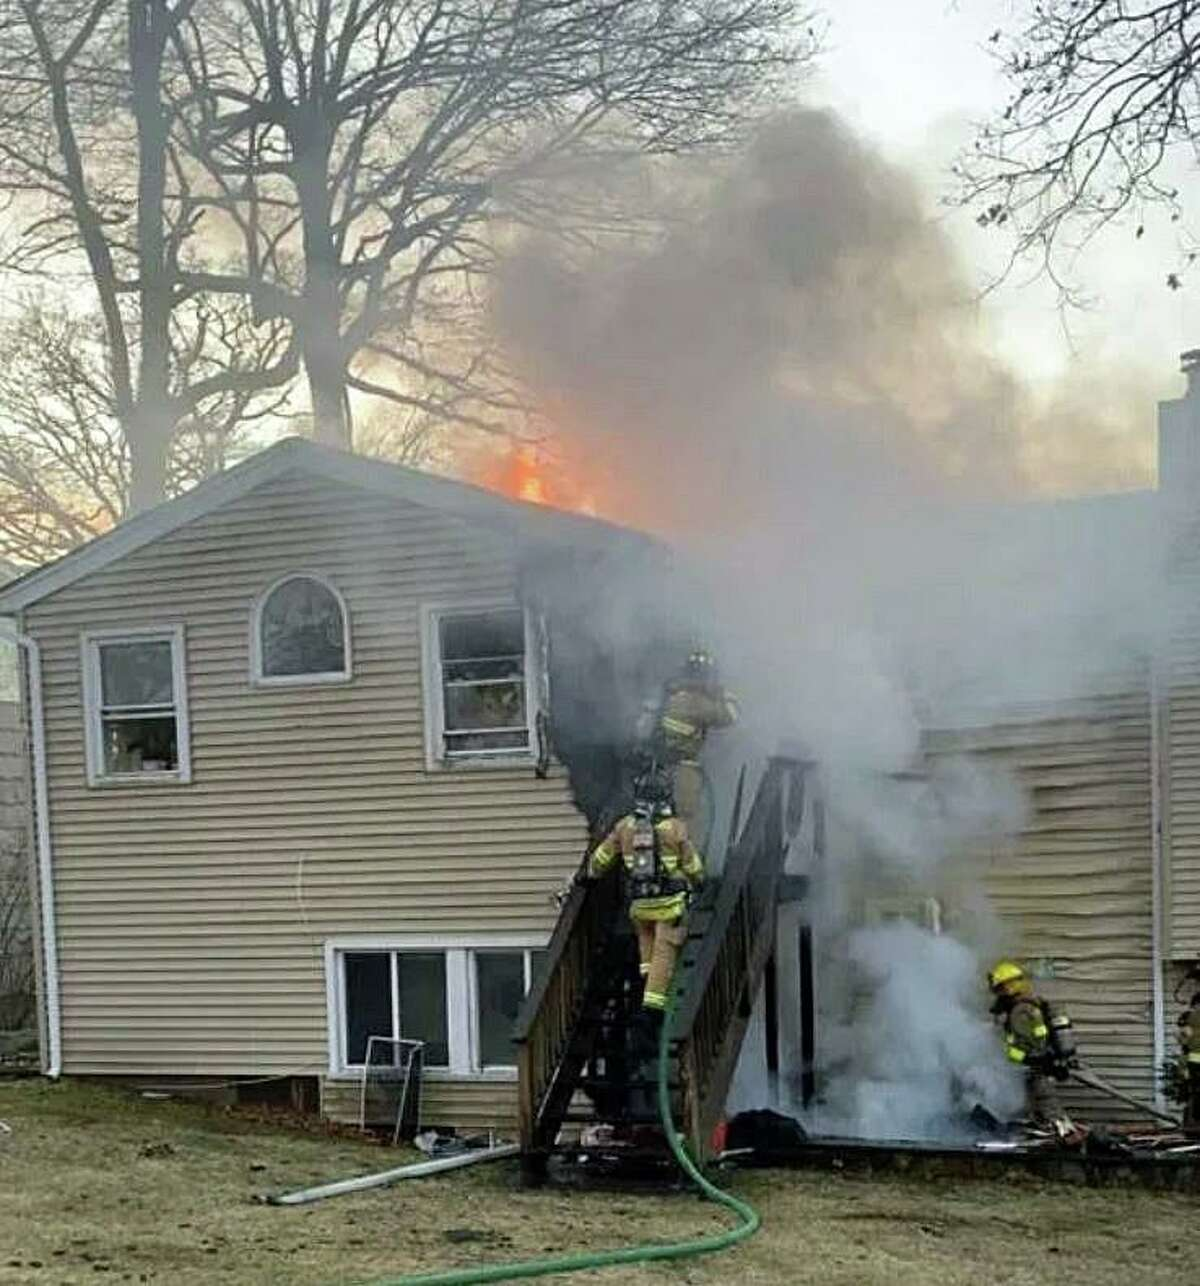 A house under renovation on Hampshire Drive was damaged by fire on Monday, Feb. 17, 2020. At 5:20 p.m., a call was received by the Stamford 911 center from a neighbor reporting flames coming from the rear of unoccupied house.